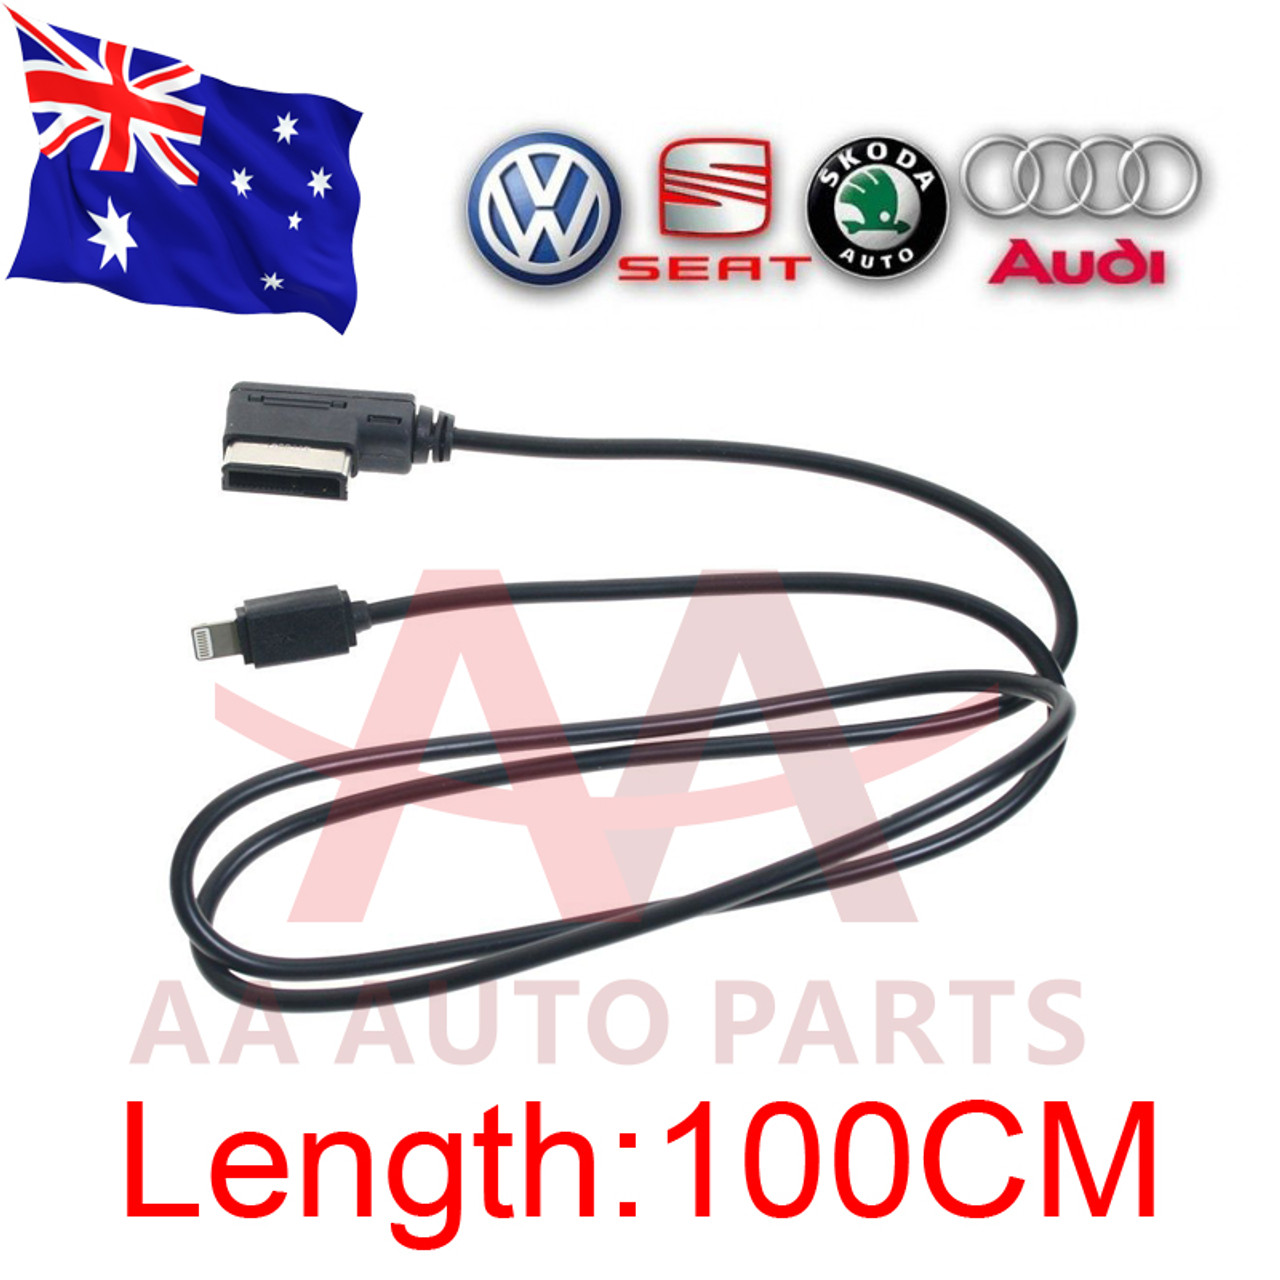 new styles dbc90 55206 Audi AMI MDI MMI Charger Adapter Aux cable Apple iPhone 6 7 Plus